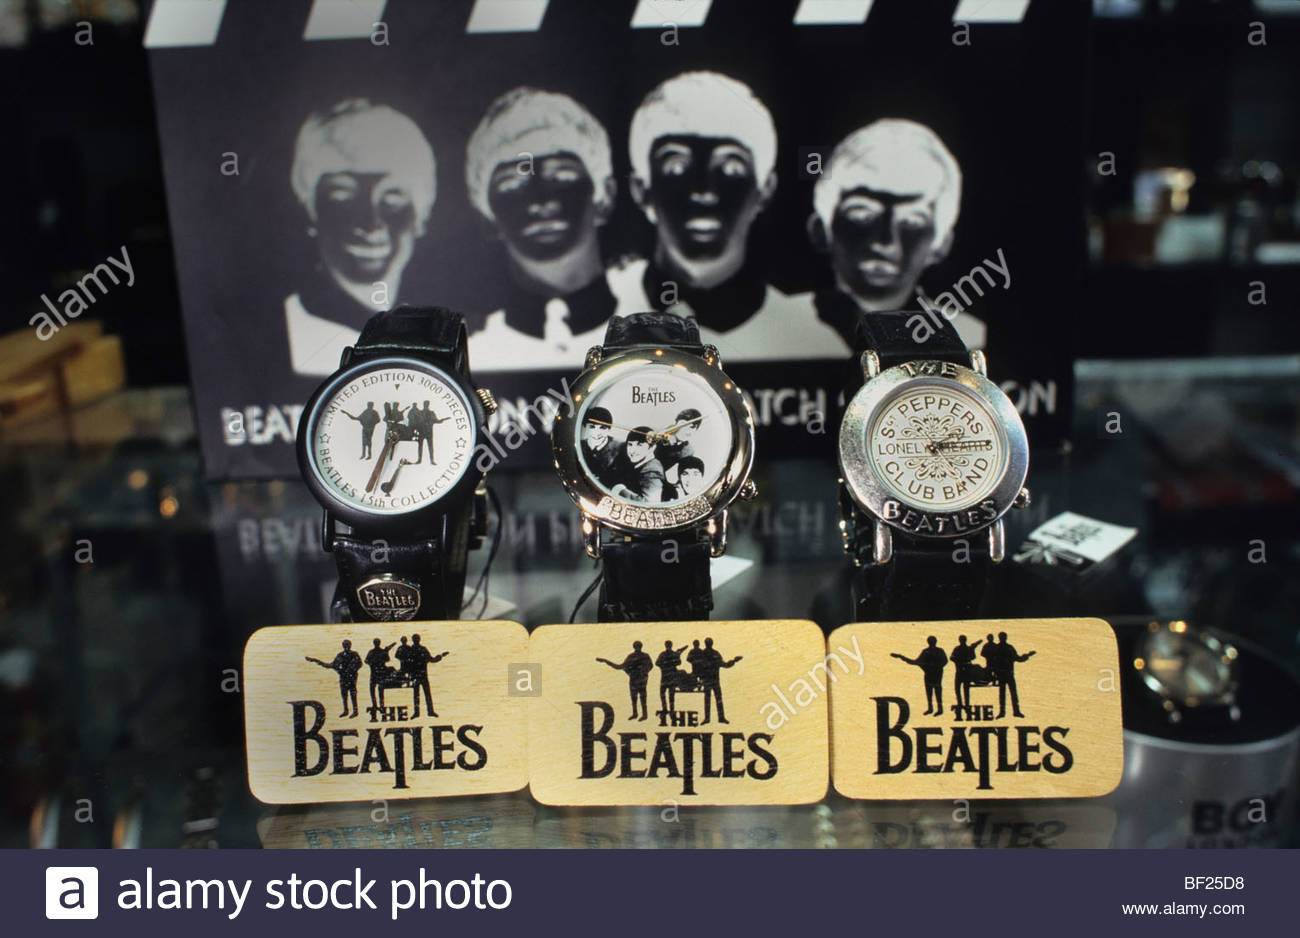 Beatles watches and paraphernalia on sale in Carnaby Street, London, England - Stock Image